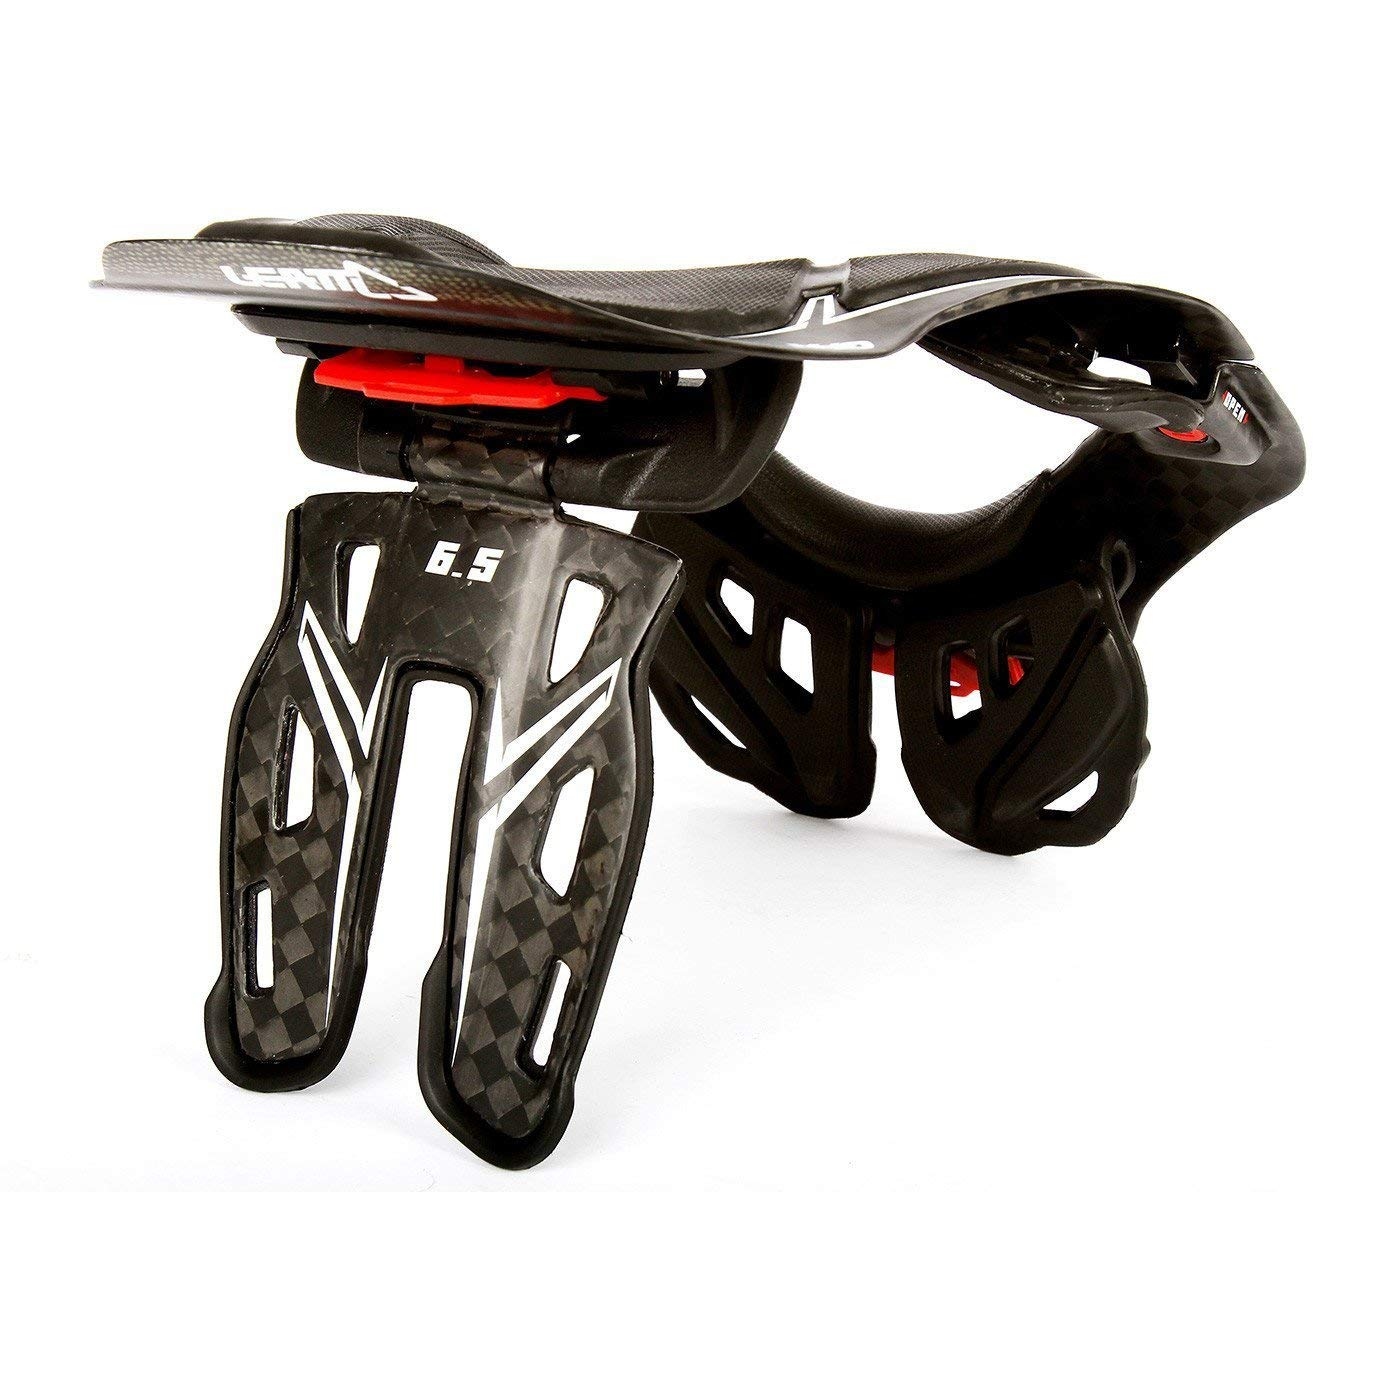 Leatt GPX 6.5 Neck Brace (Carbon/Black, Small/Medium) by Leatt Brace (Image #3)